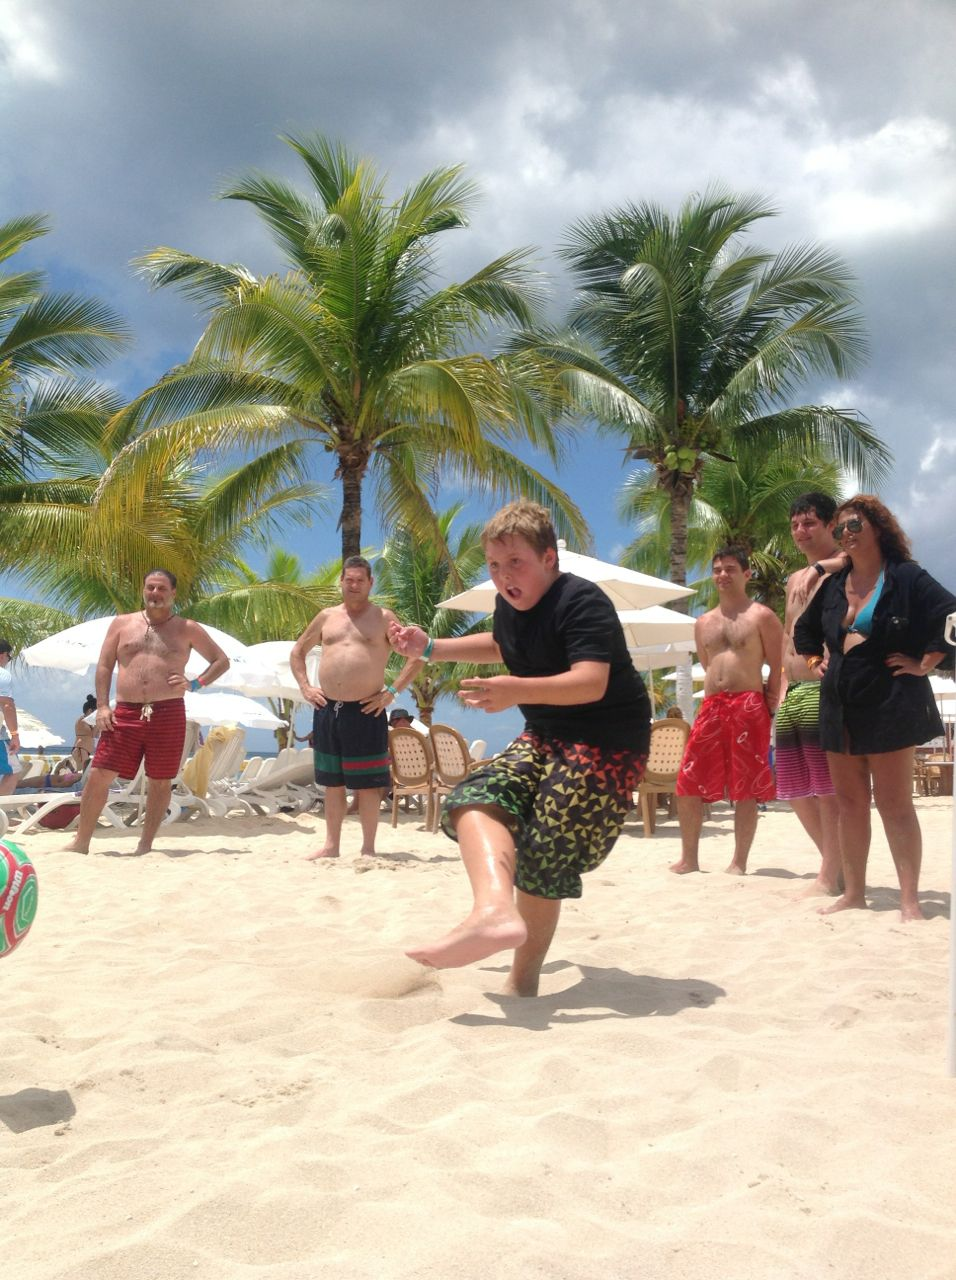 #Beach #Games at #Cozumel #Playa Mia